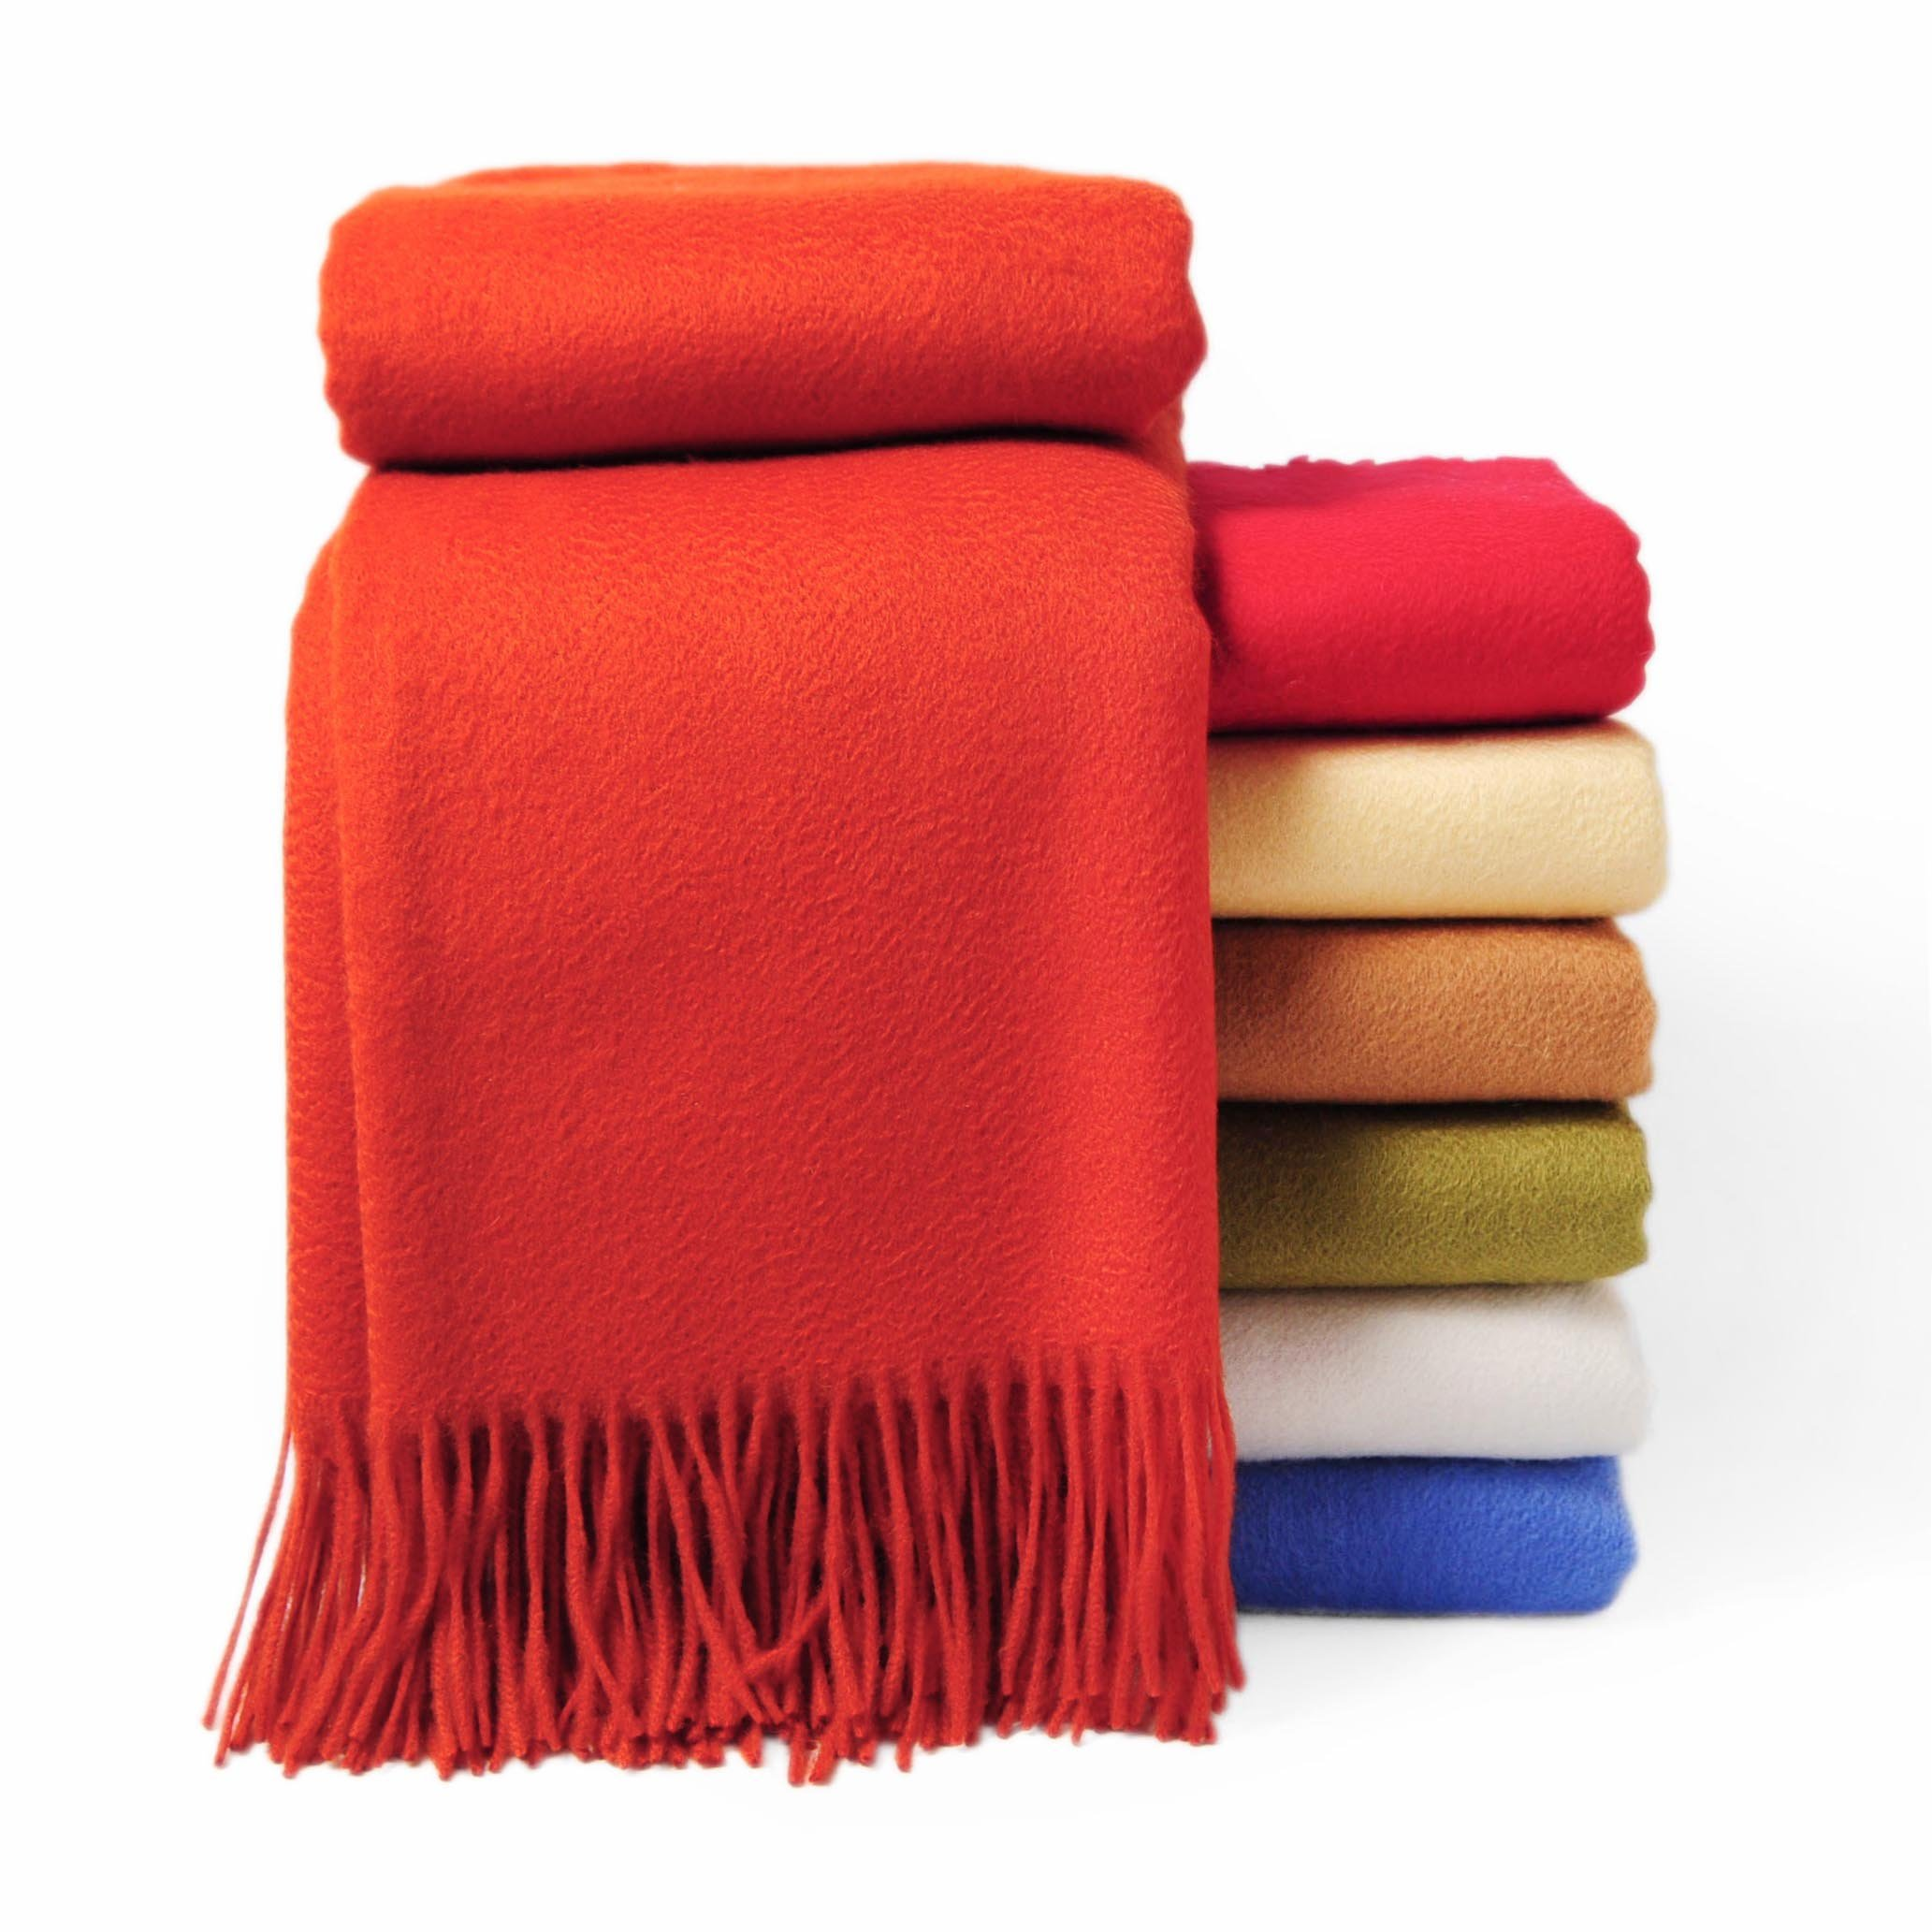 CUDDLE DREAMS Premium Cashmere Throw Blanket with Fringe, Luxuriously Soft (Persimmon)